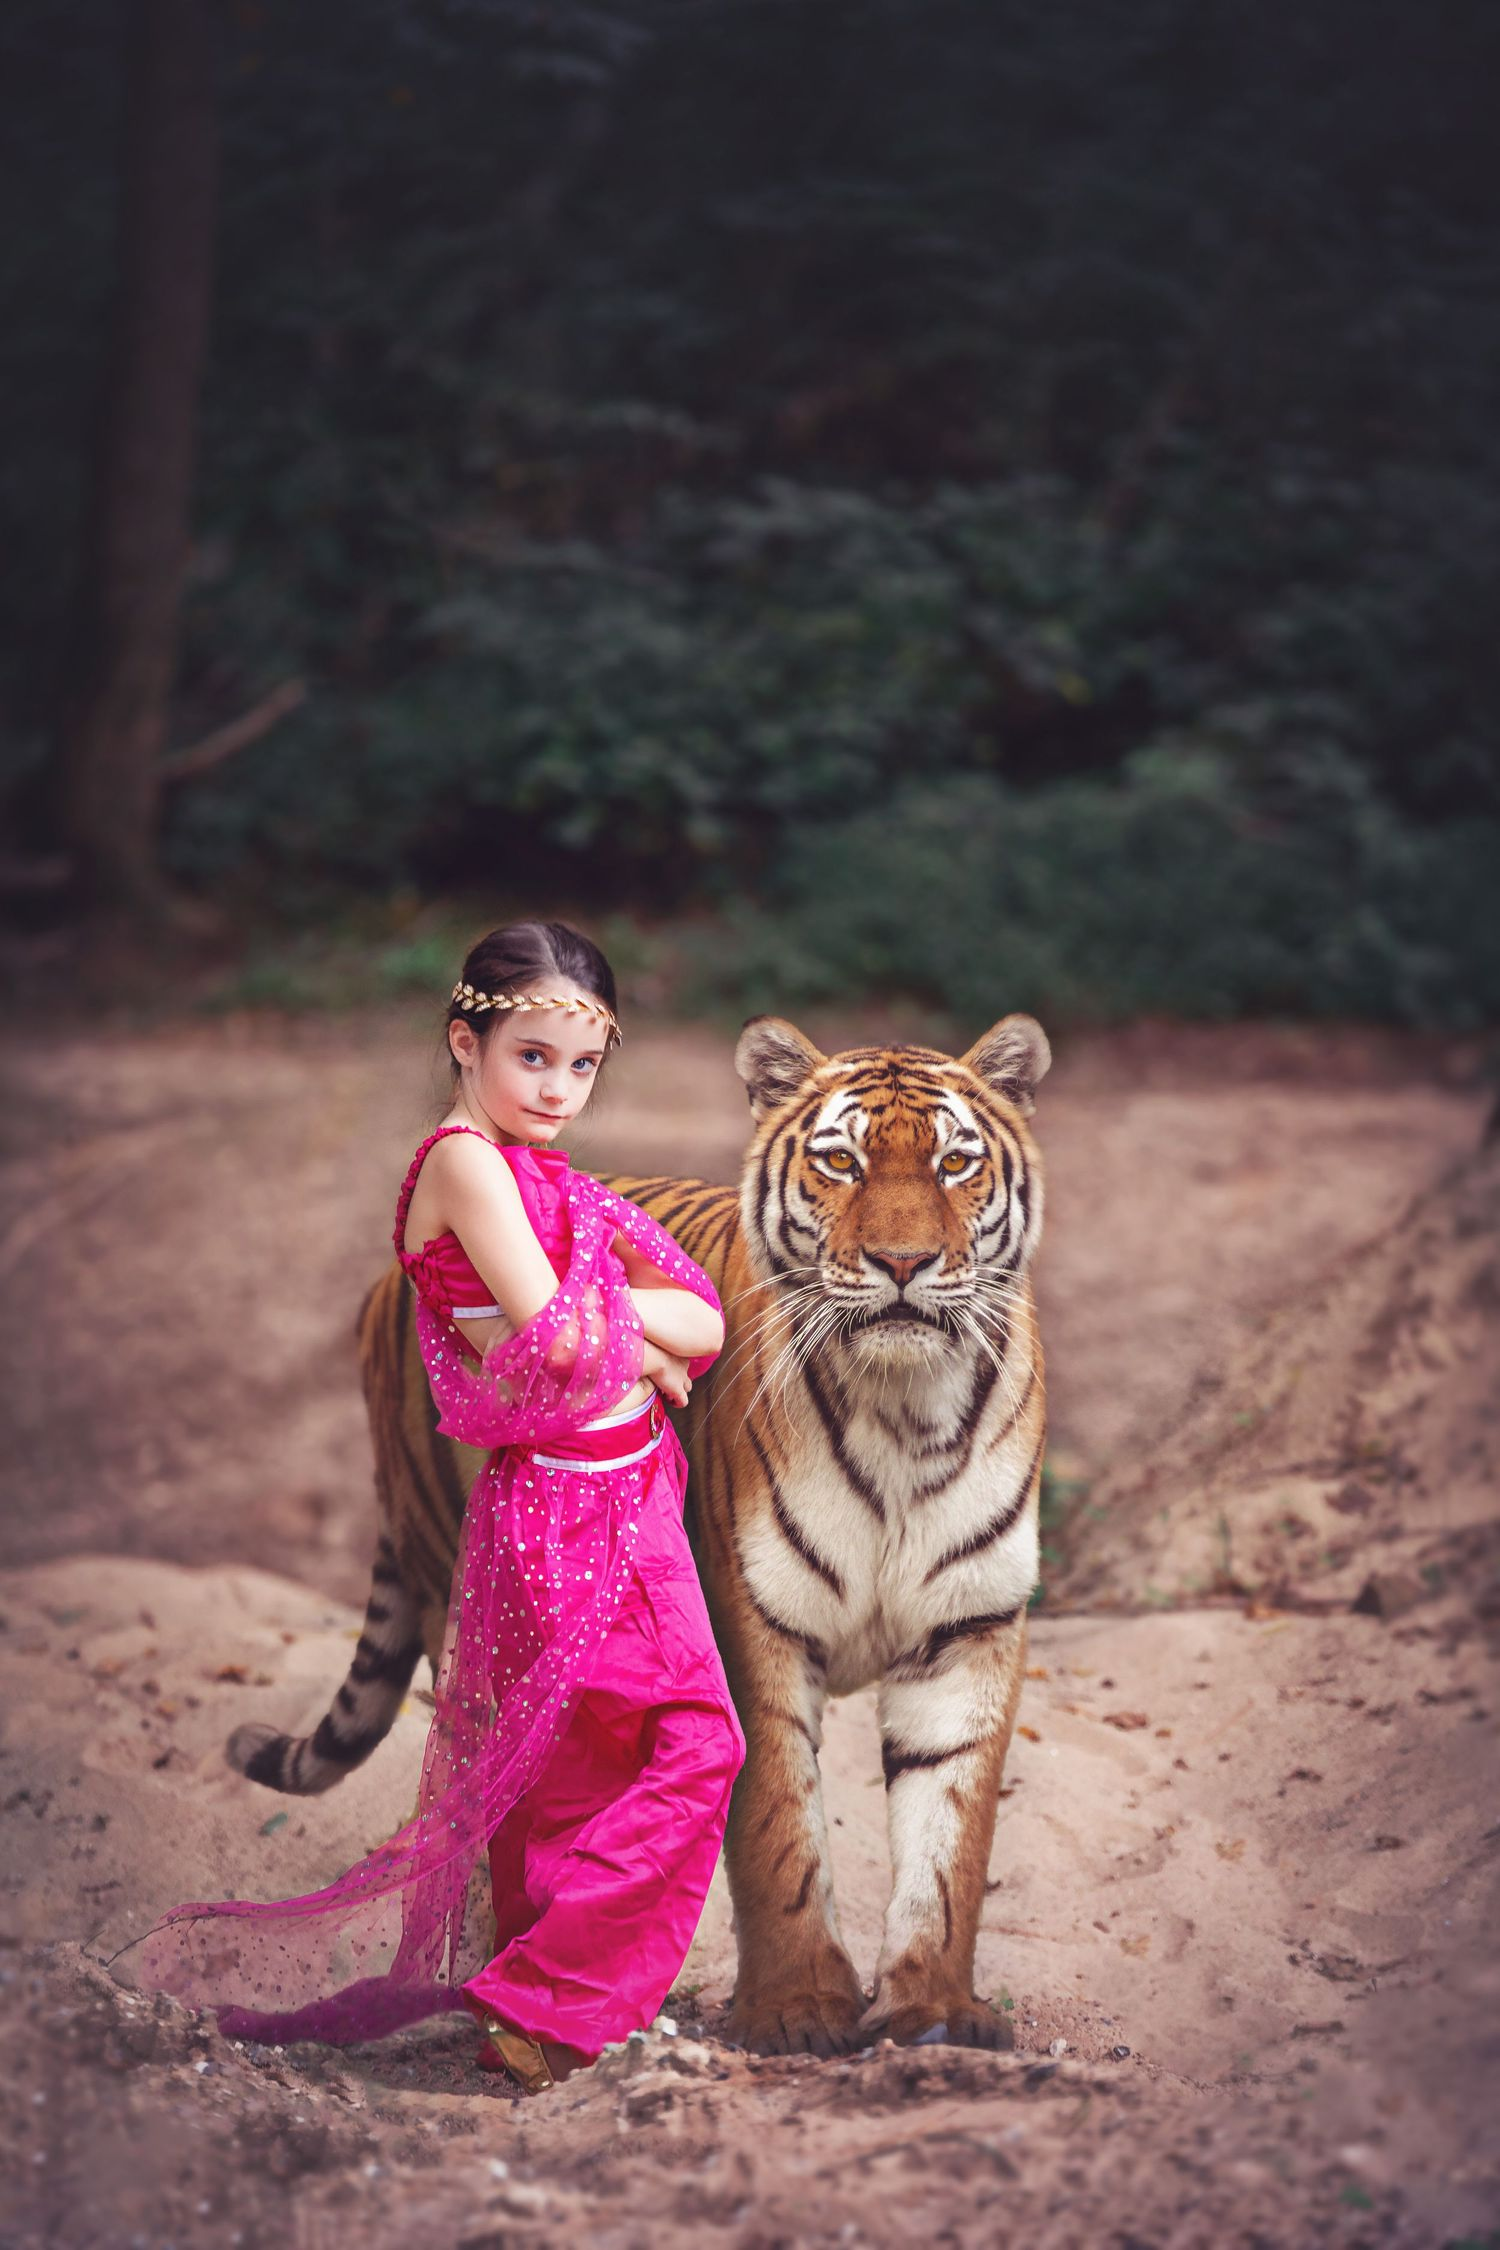 arabian princess tiger imagination photography mc